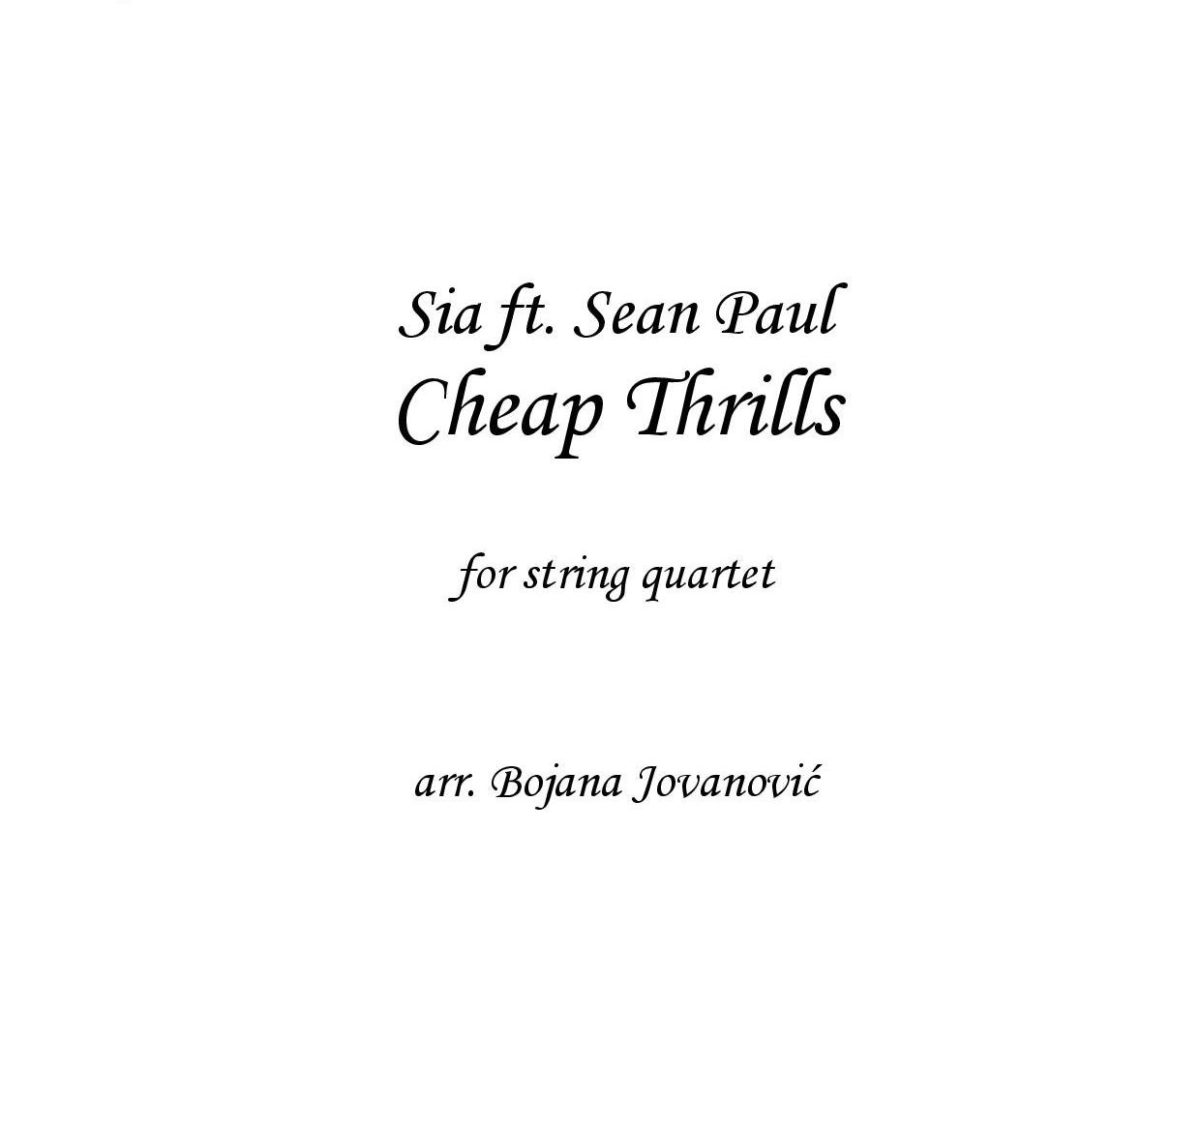 Cheap Thrills (Sia) - Sheet Music